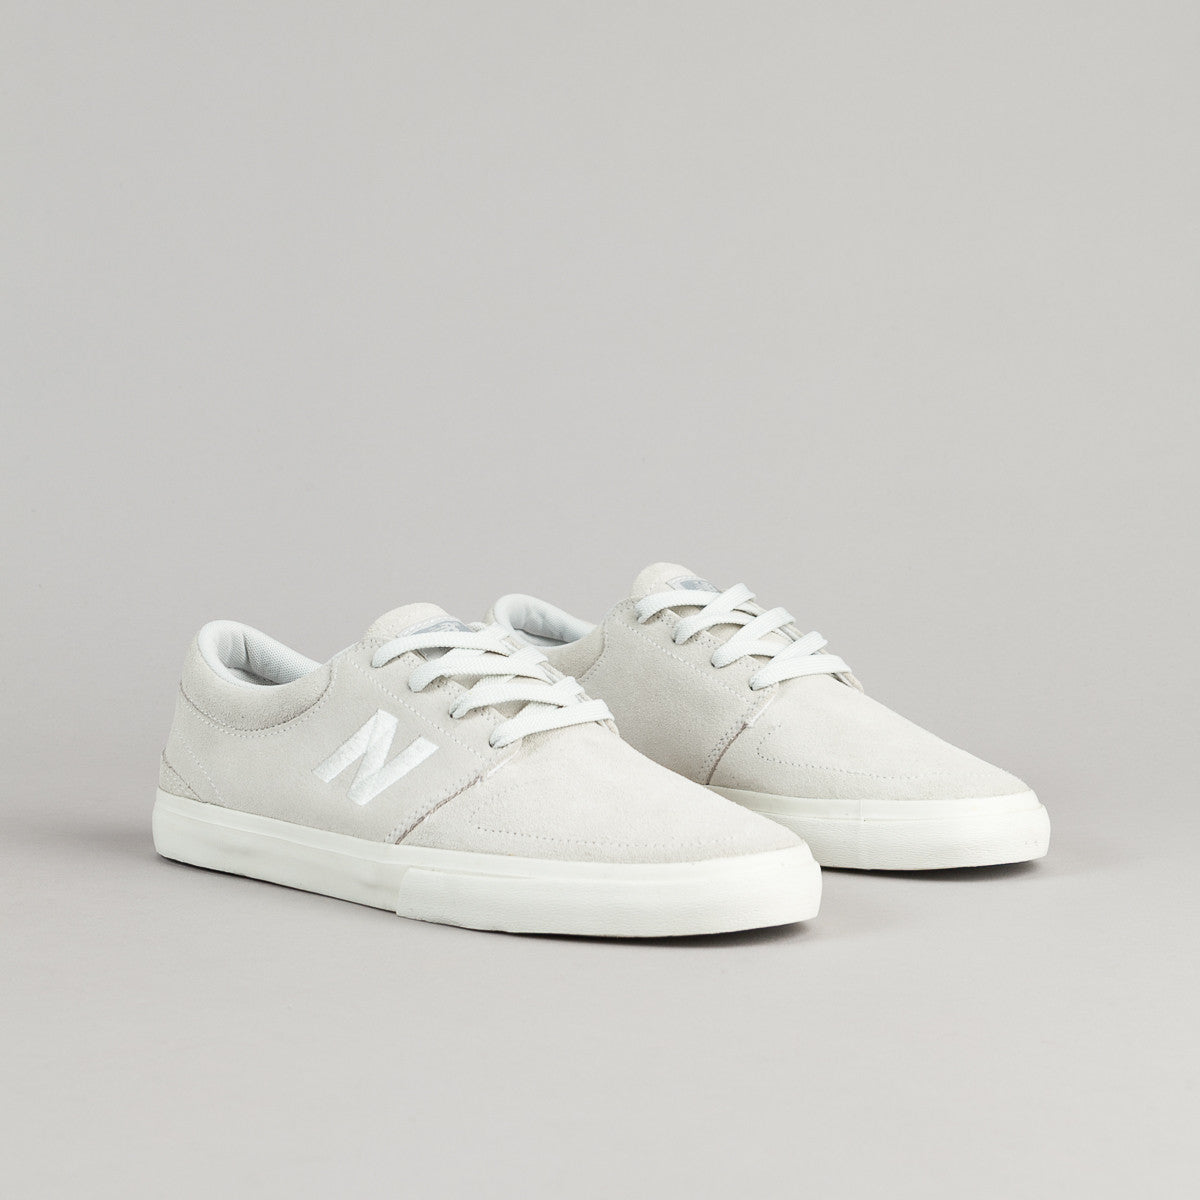 New Balance Numeric Brighton 344 Shoes - White / Light Grey